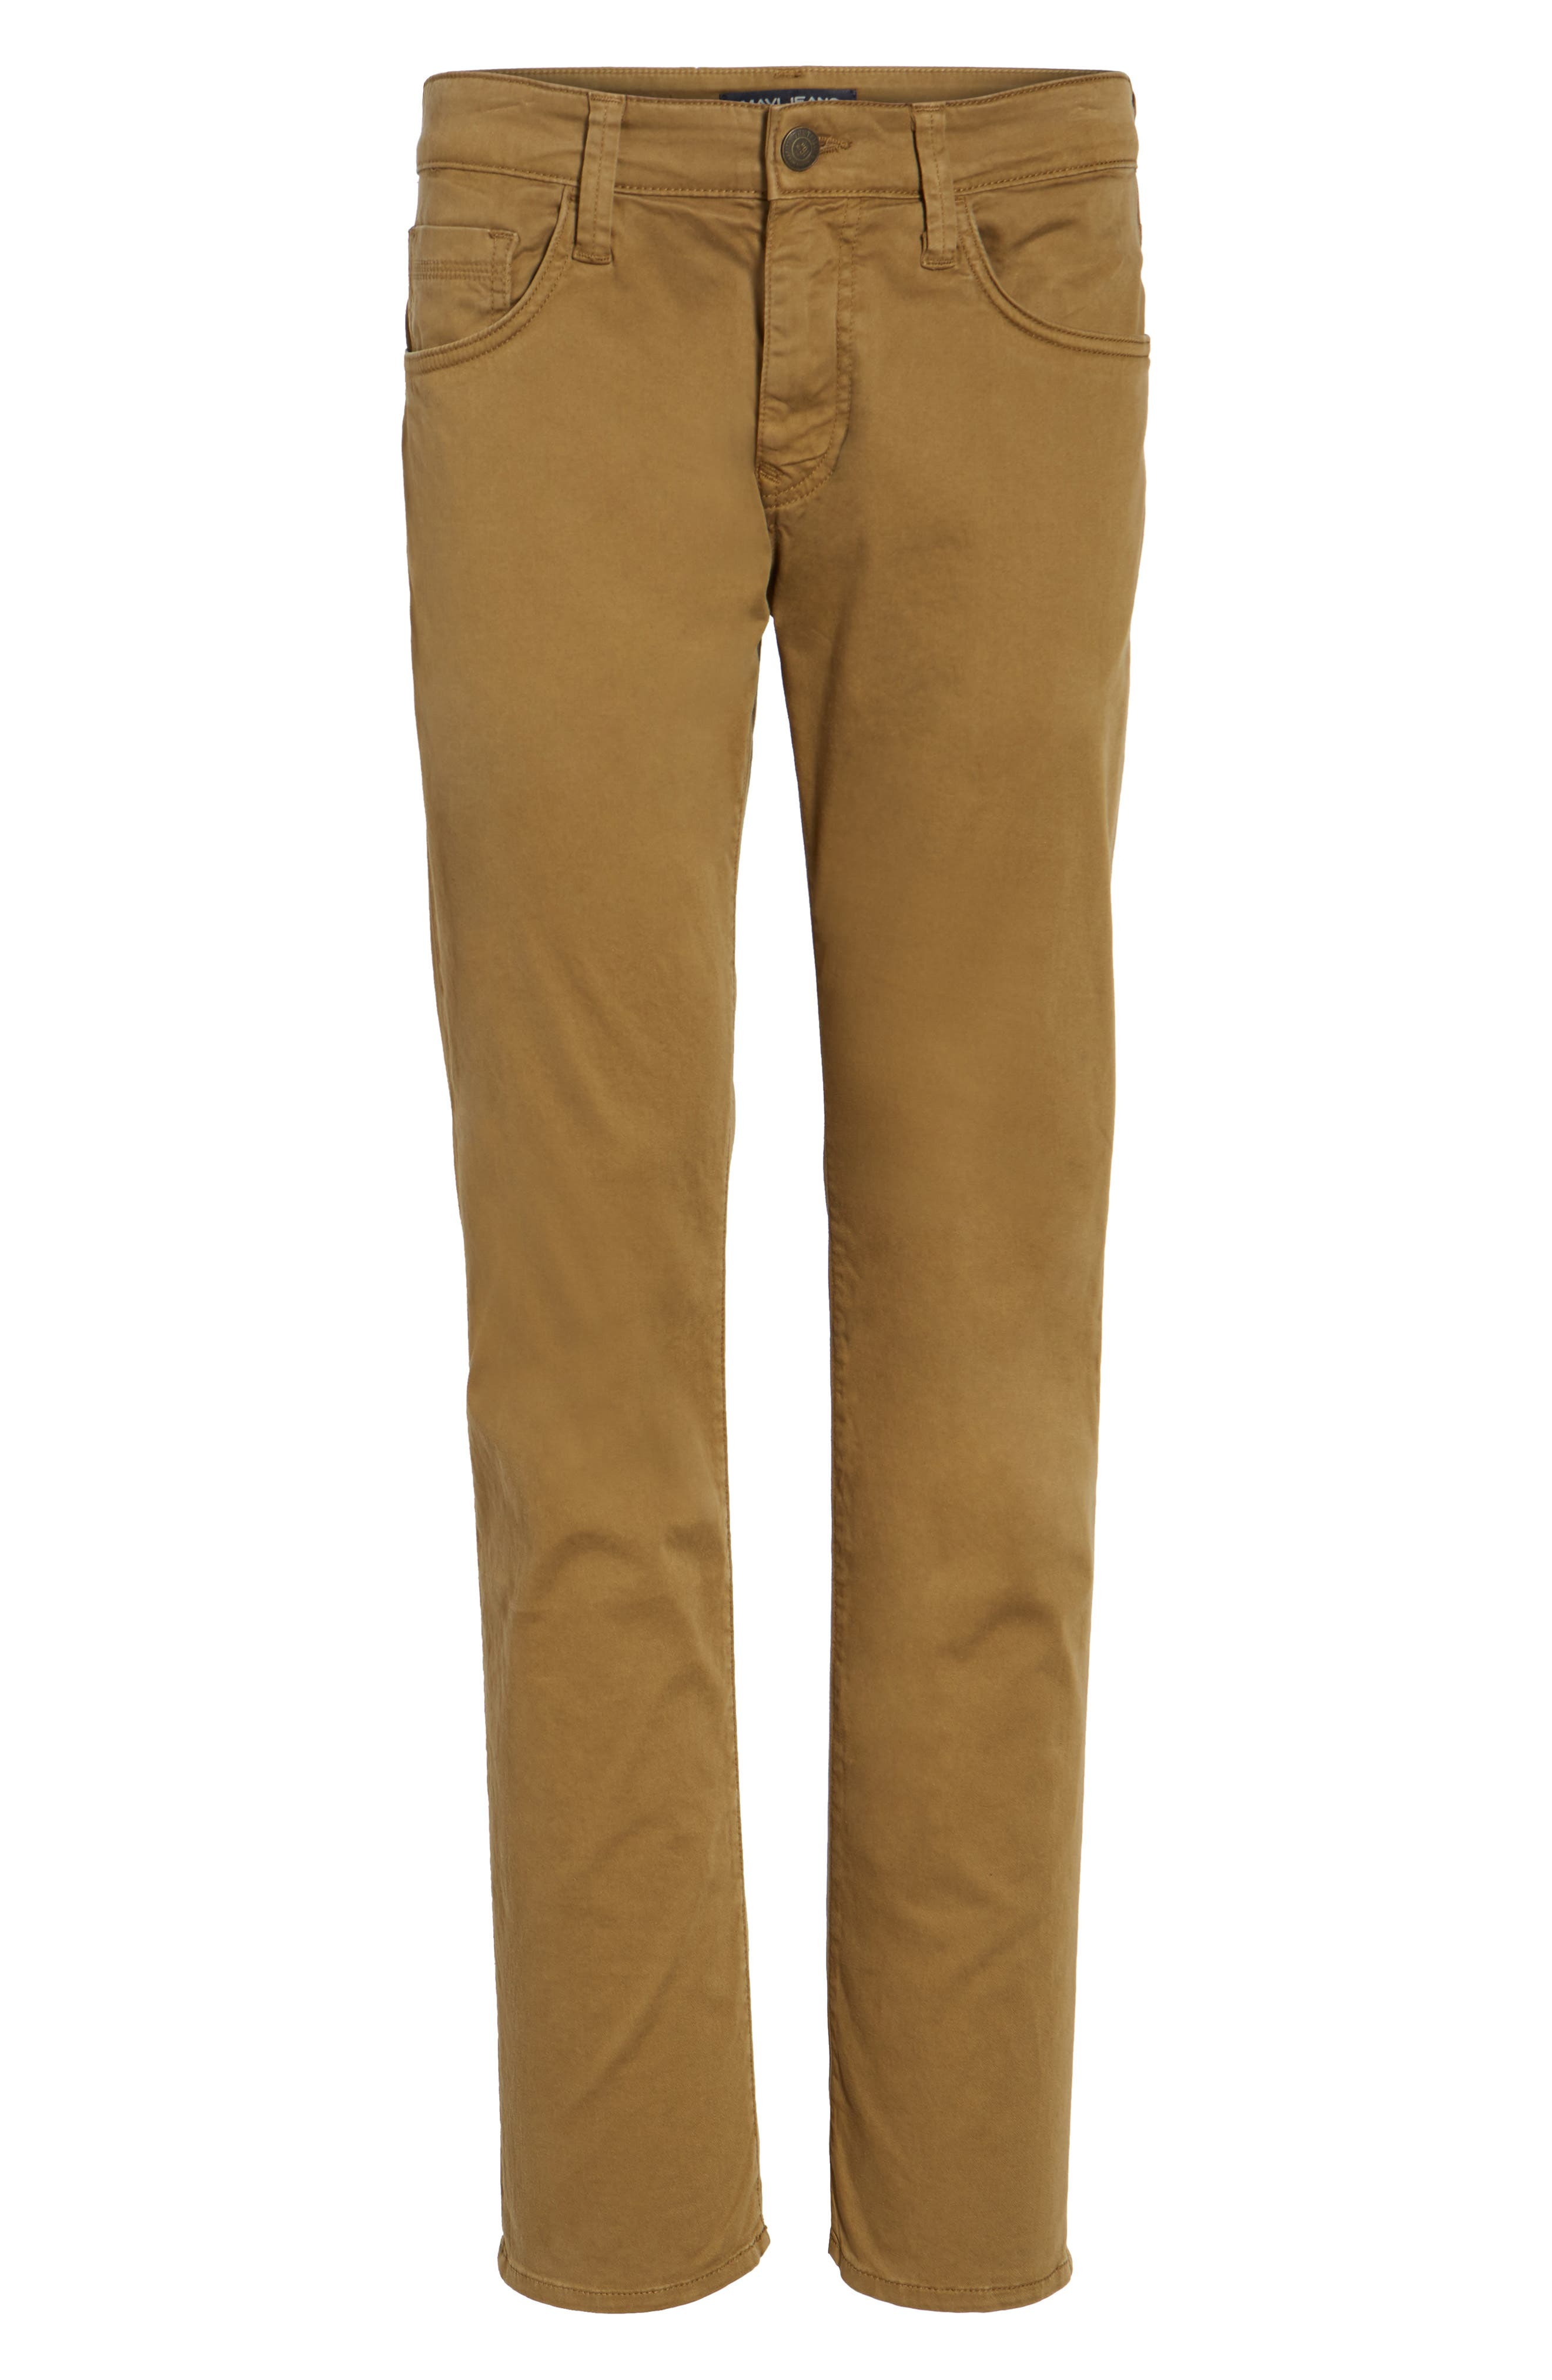 Zach Straight Leg Twill Pants,                             Alternate thumbnail 6, color,                             200